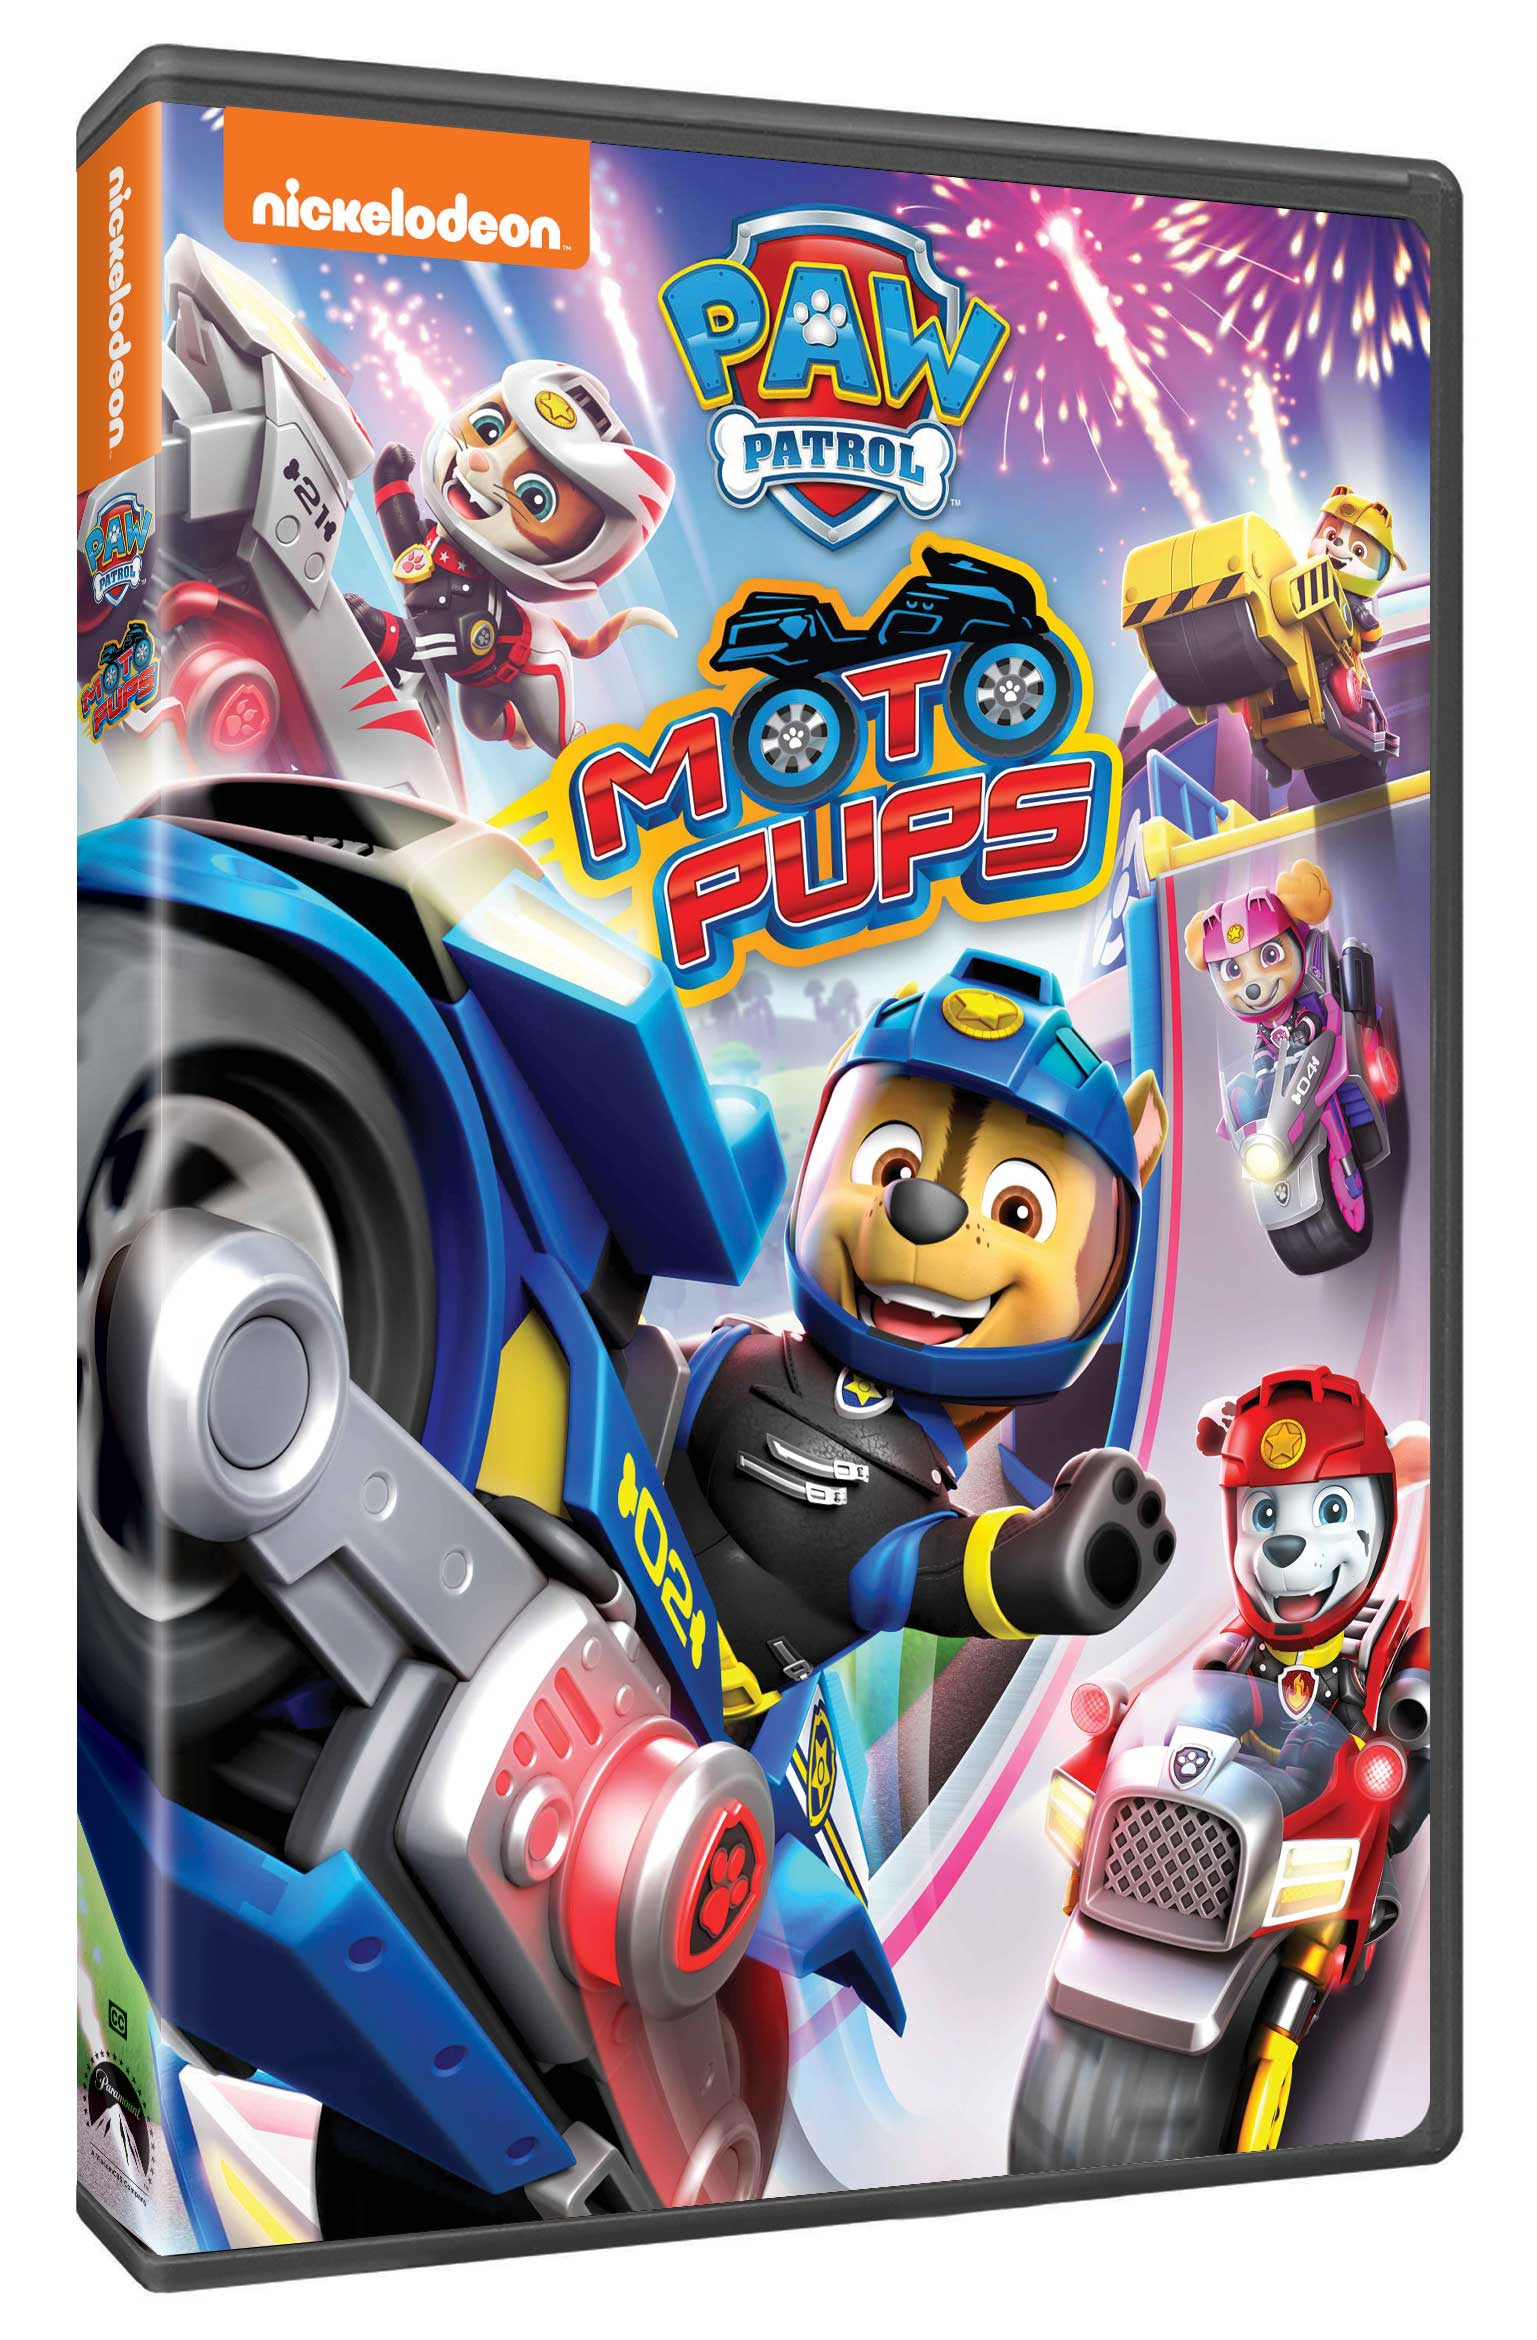 The Pawsome PAW Patrol: Moto Pups Giveaway